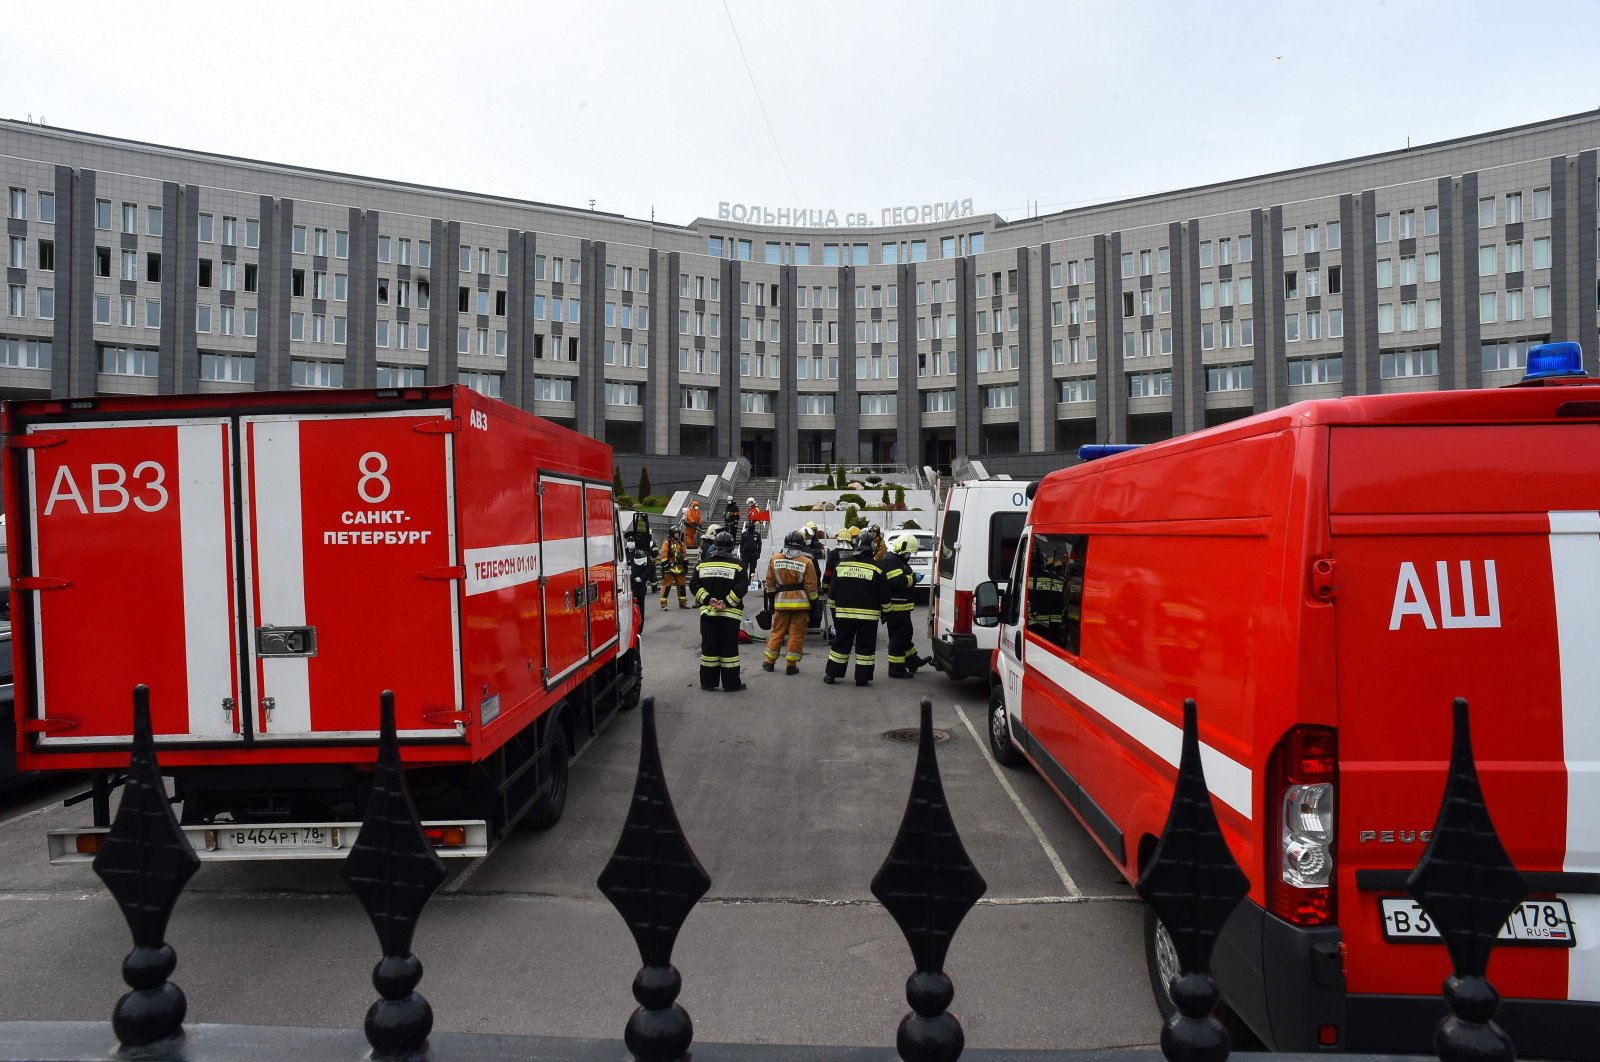 Emergencies personnel work at the site of a fire at the St. George hospital in St. Petersburg, Russia, May 12, 2020. (AFP Photo)